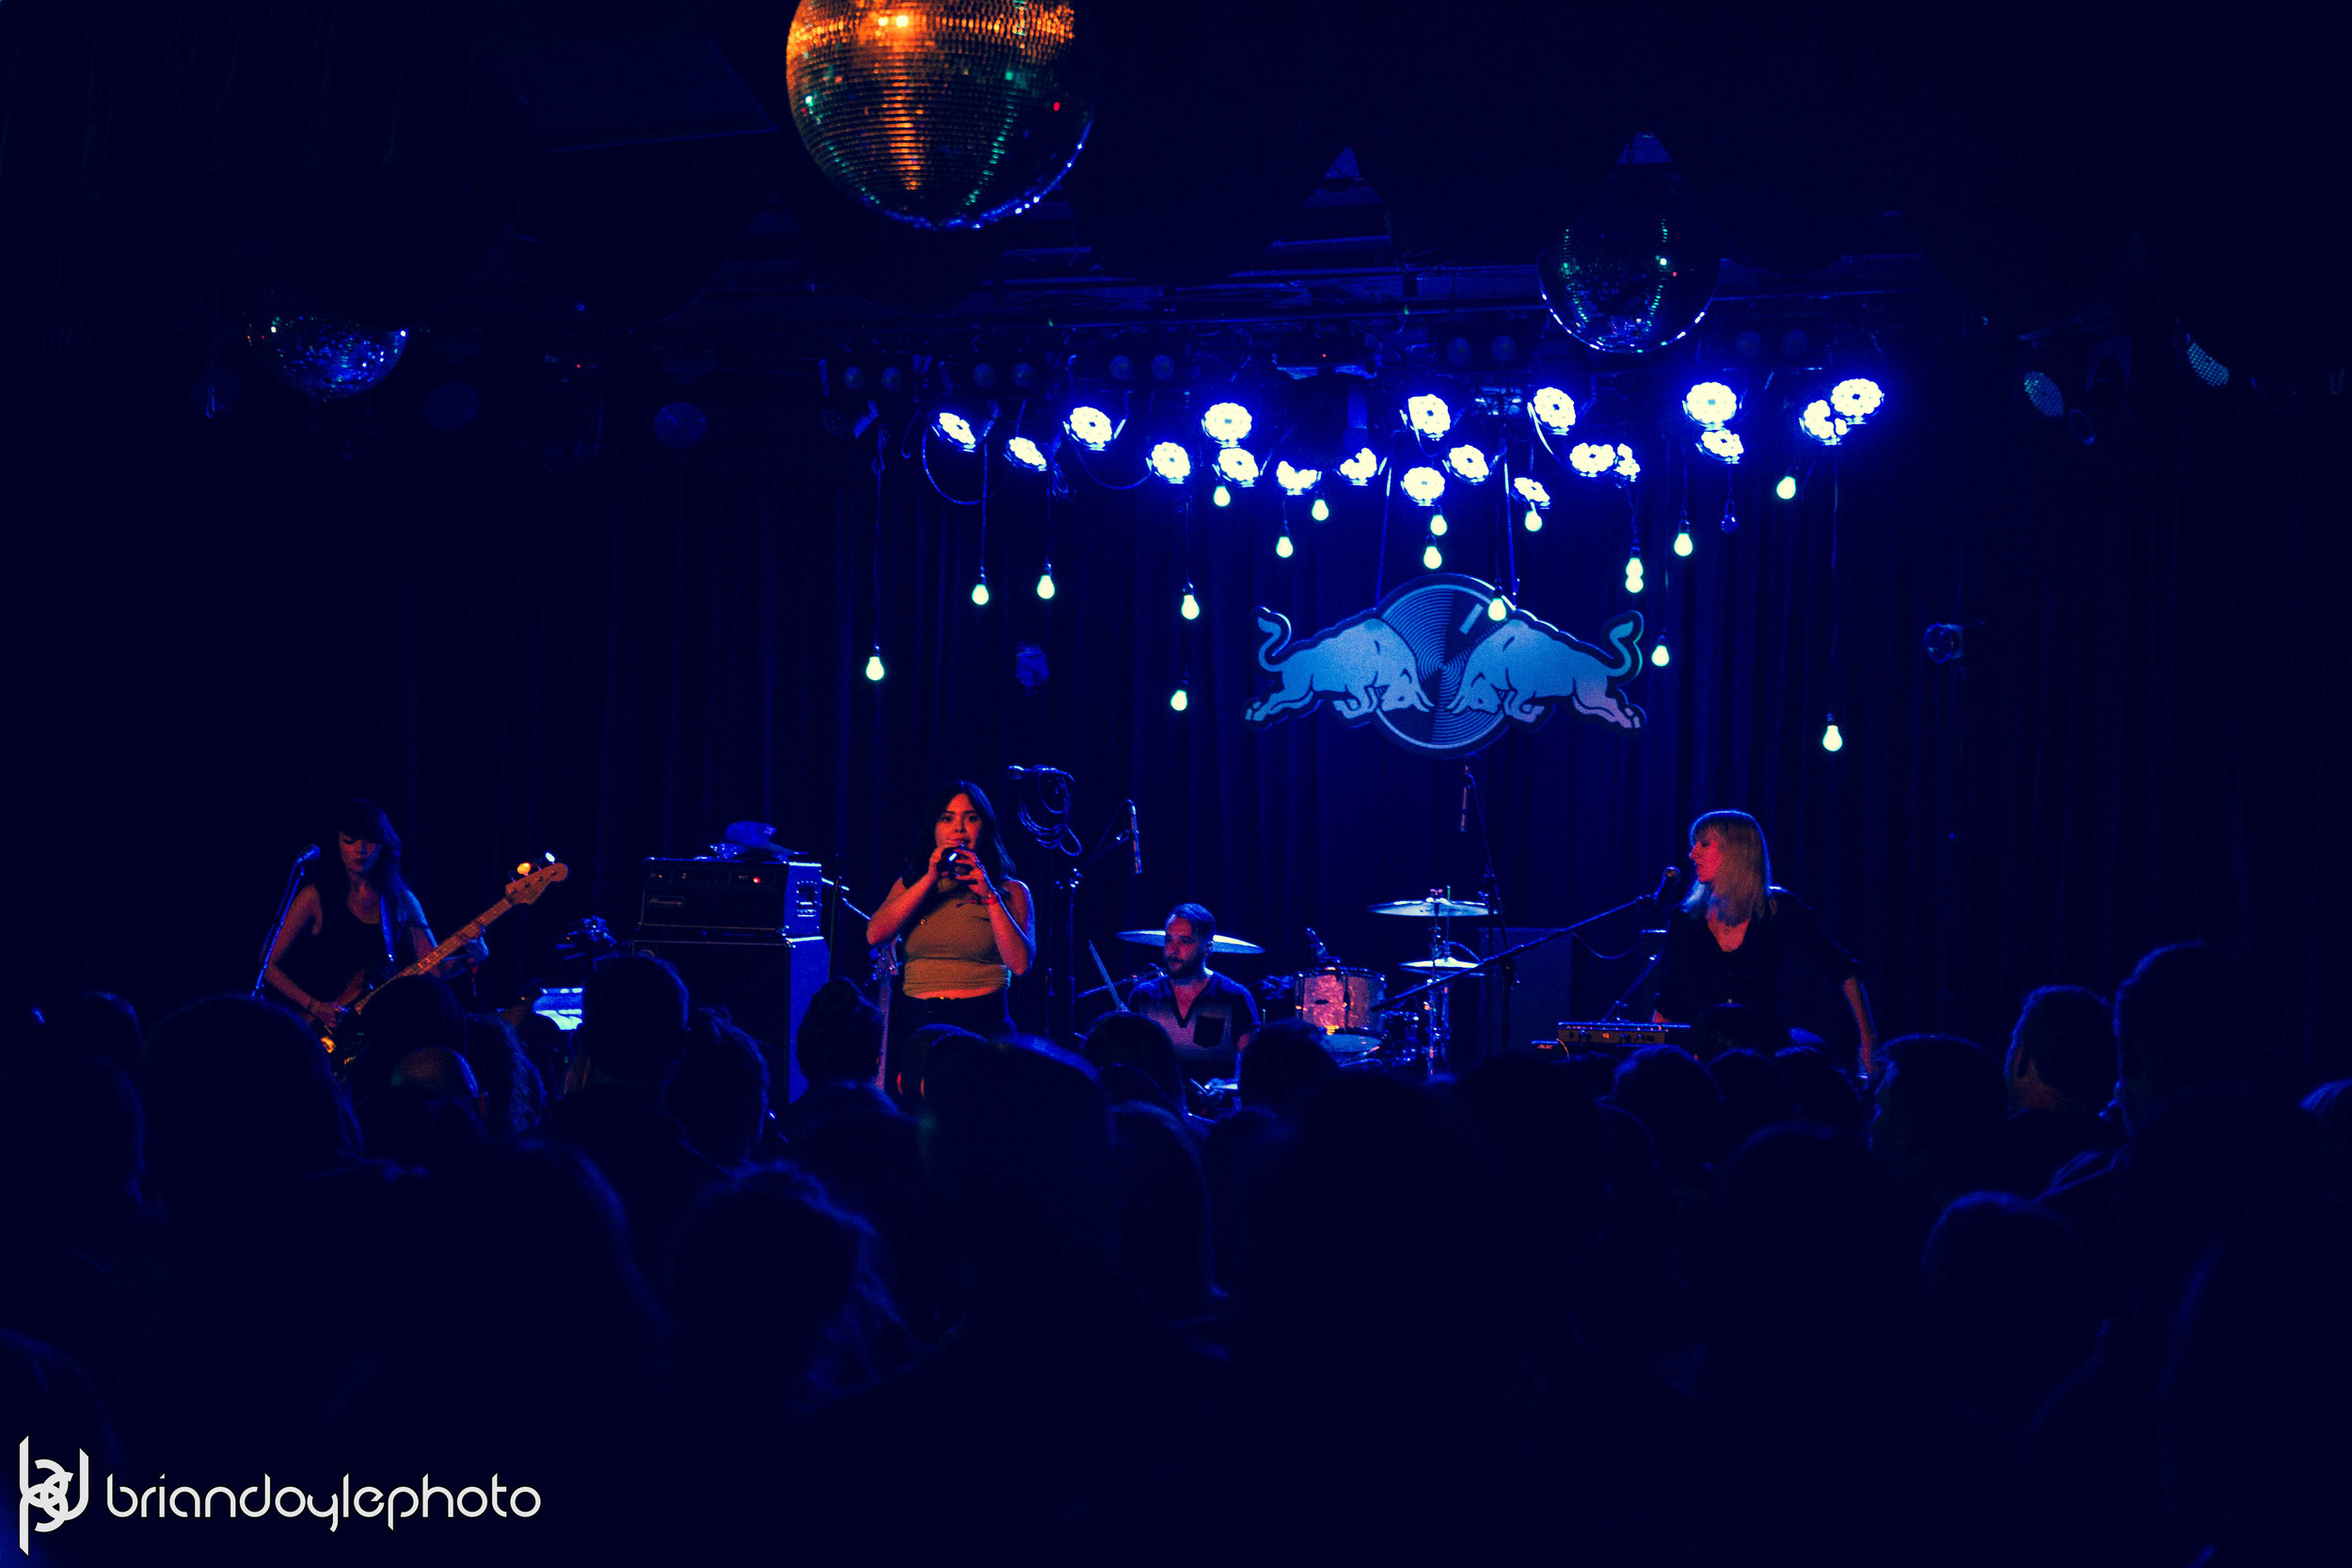 Red Bull - MS MR, Feathers, Electric Sons @ The Roxy 2014.11.02 -32.jpg